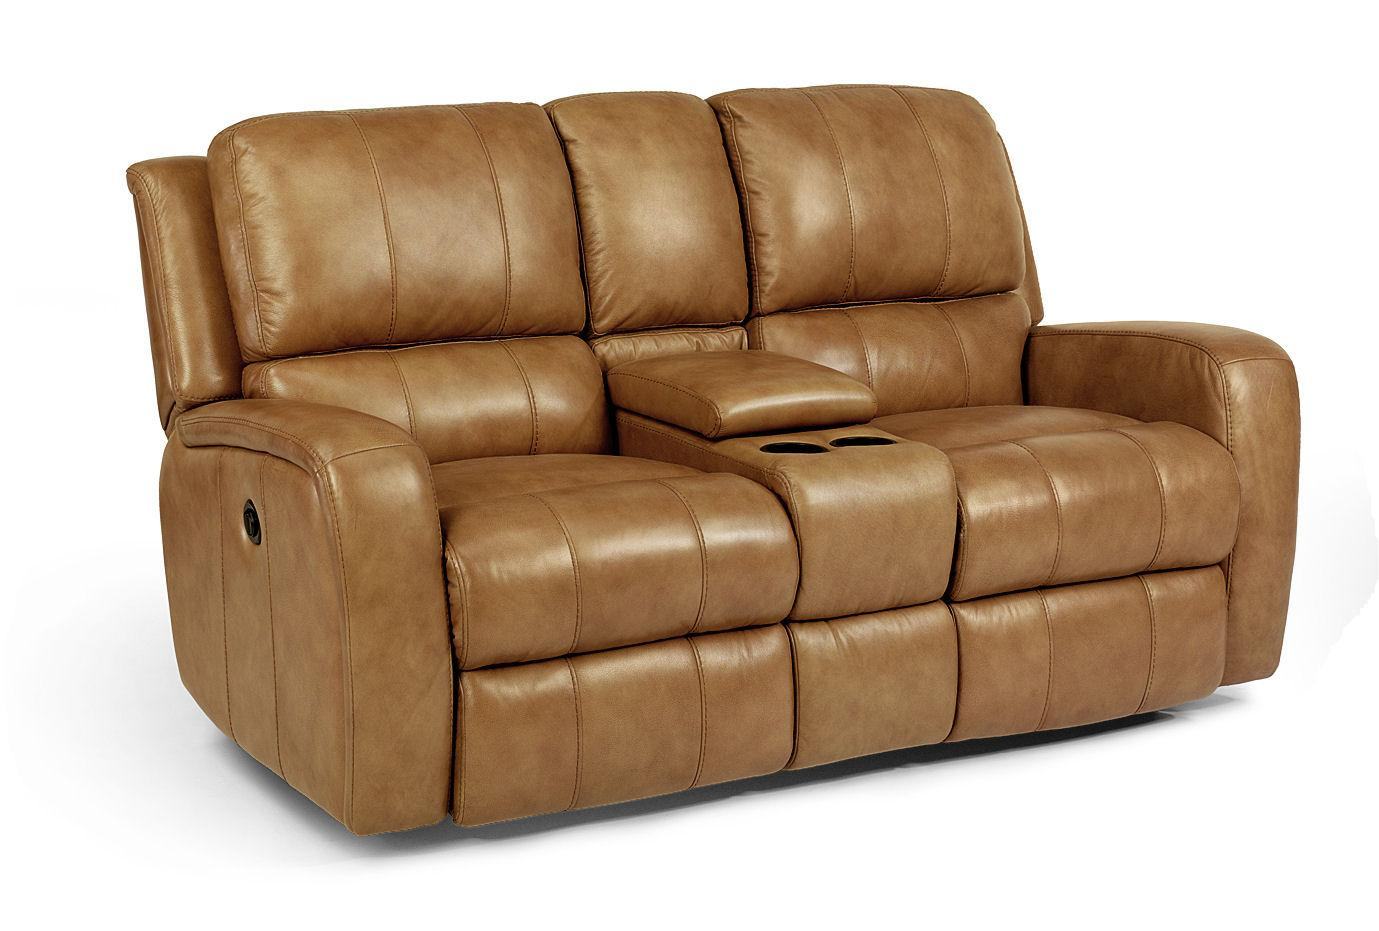 Flexsteel Latitudes-Hammond Power Reclining Love Seat with Console - Item Number: 1157-604P